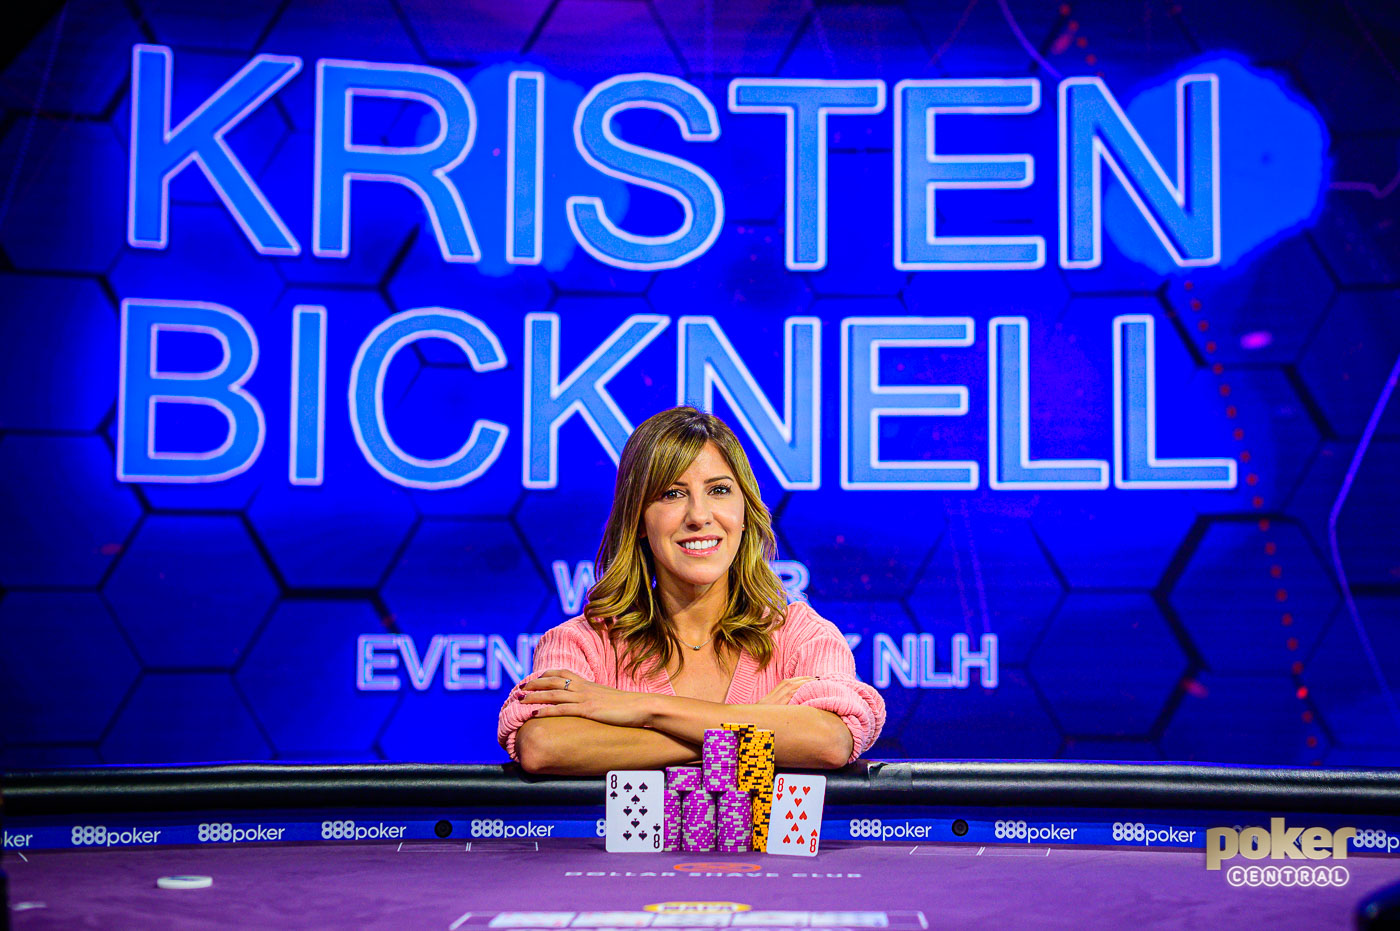 Kristen Bicknell claimed the biggest victory of her poker career at the 2019 Poker Masters.